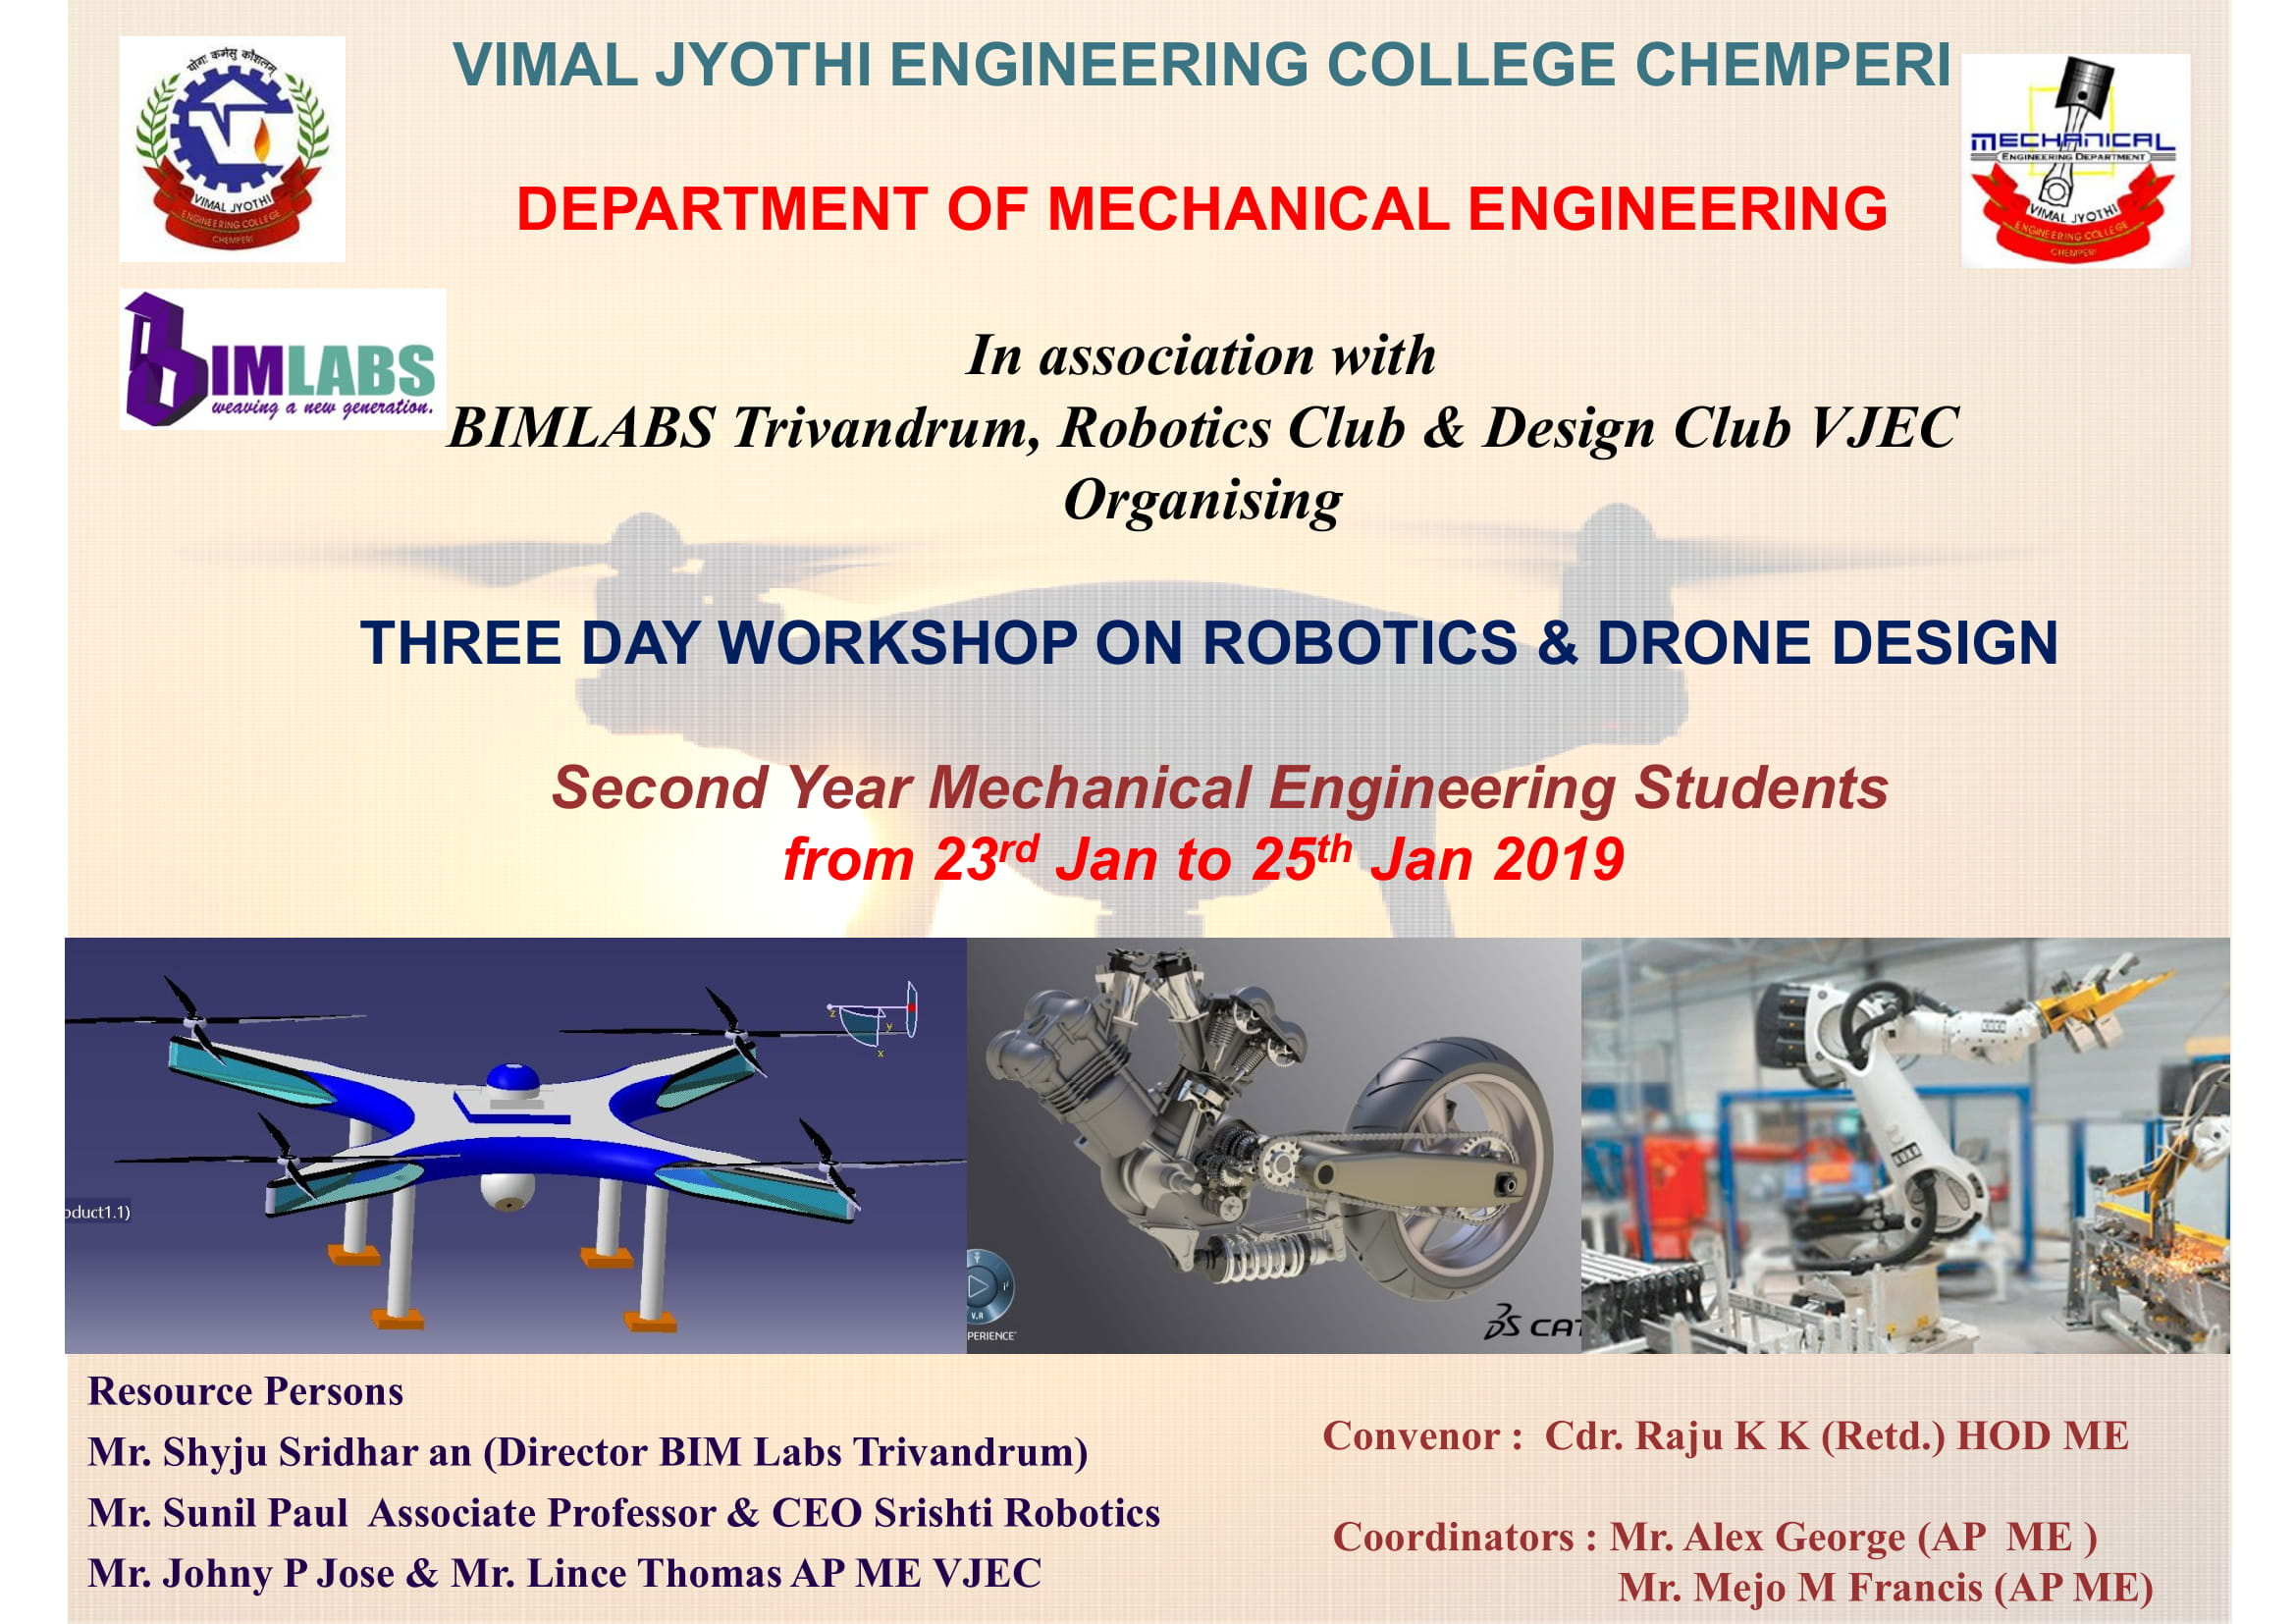 THREE DAY WORKSHOP ON ROBOTICS & DRONE DESIGN